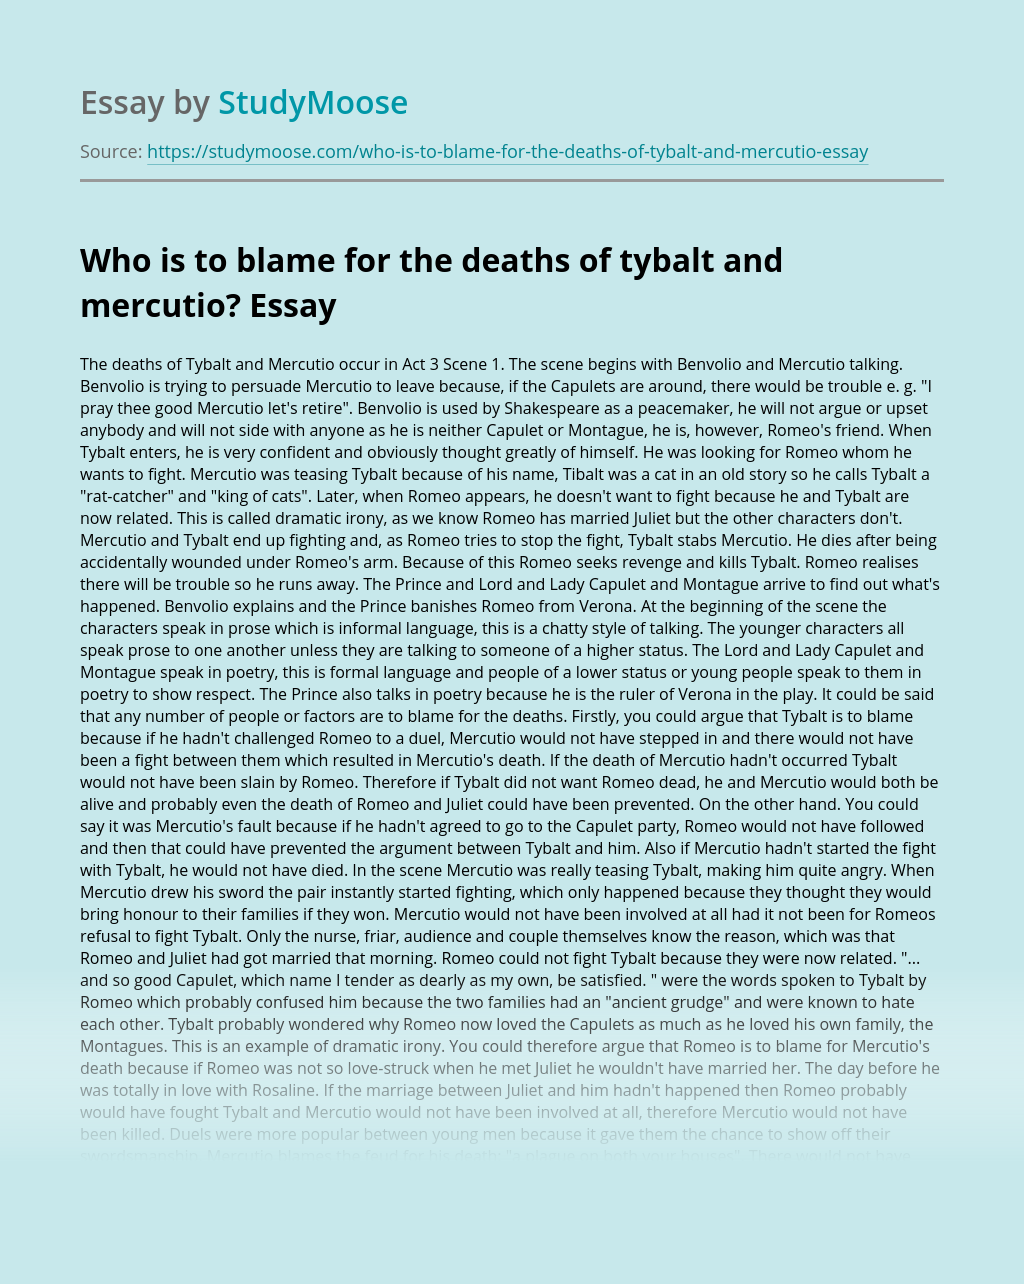 Who is to blame for the deaths of tybalt and mercutio?